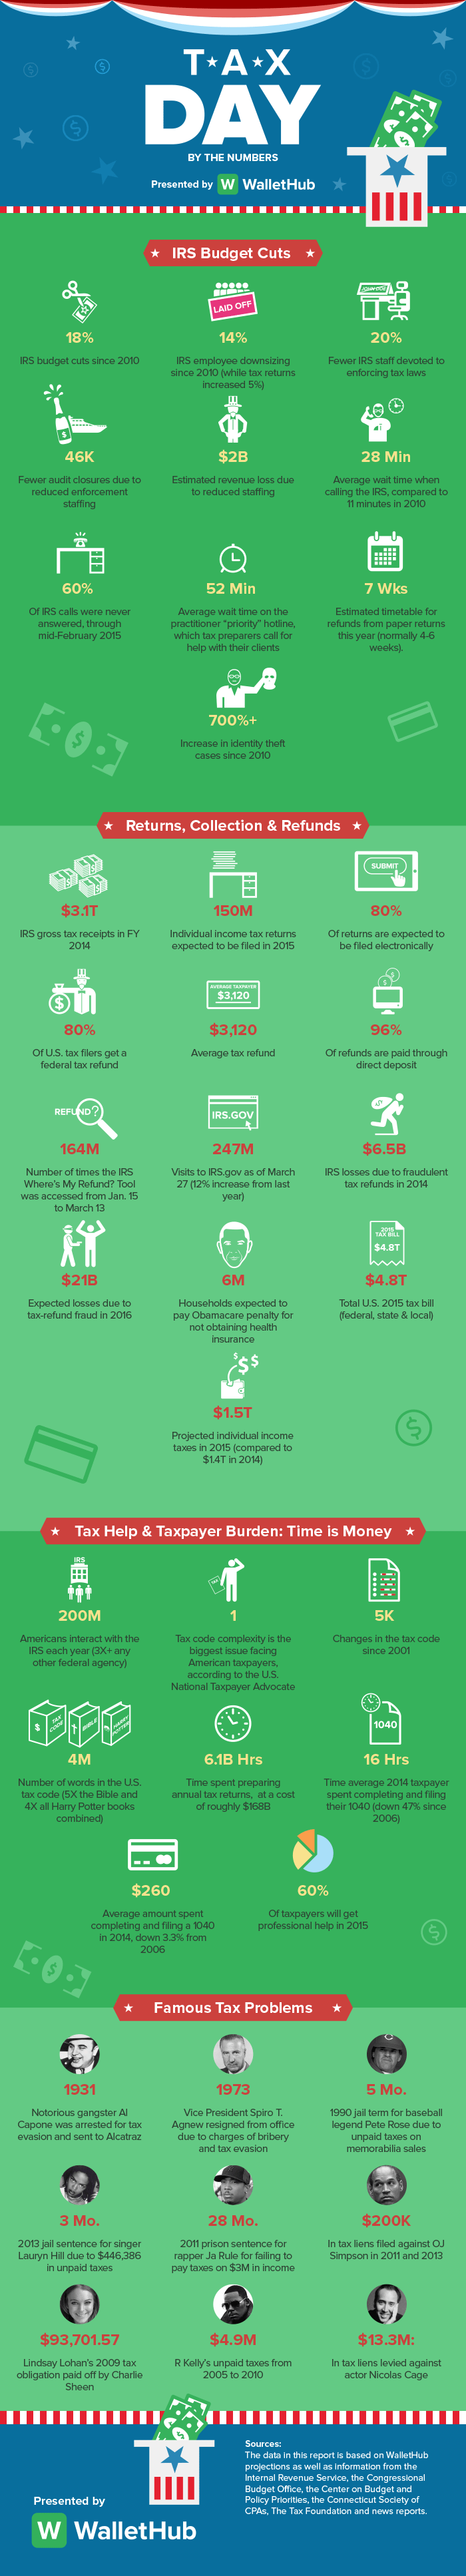 tax-day-by-the-numbers-infographic